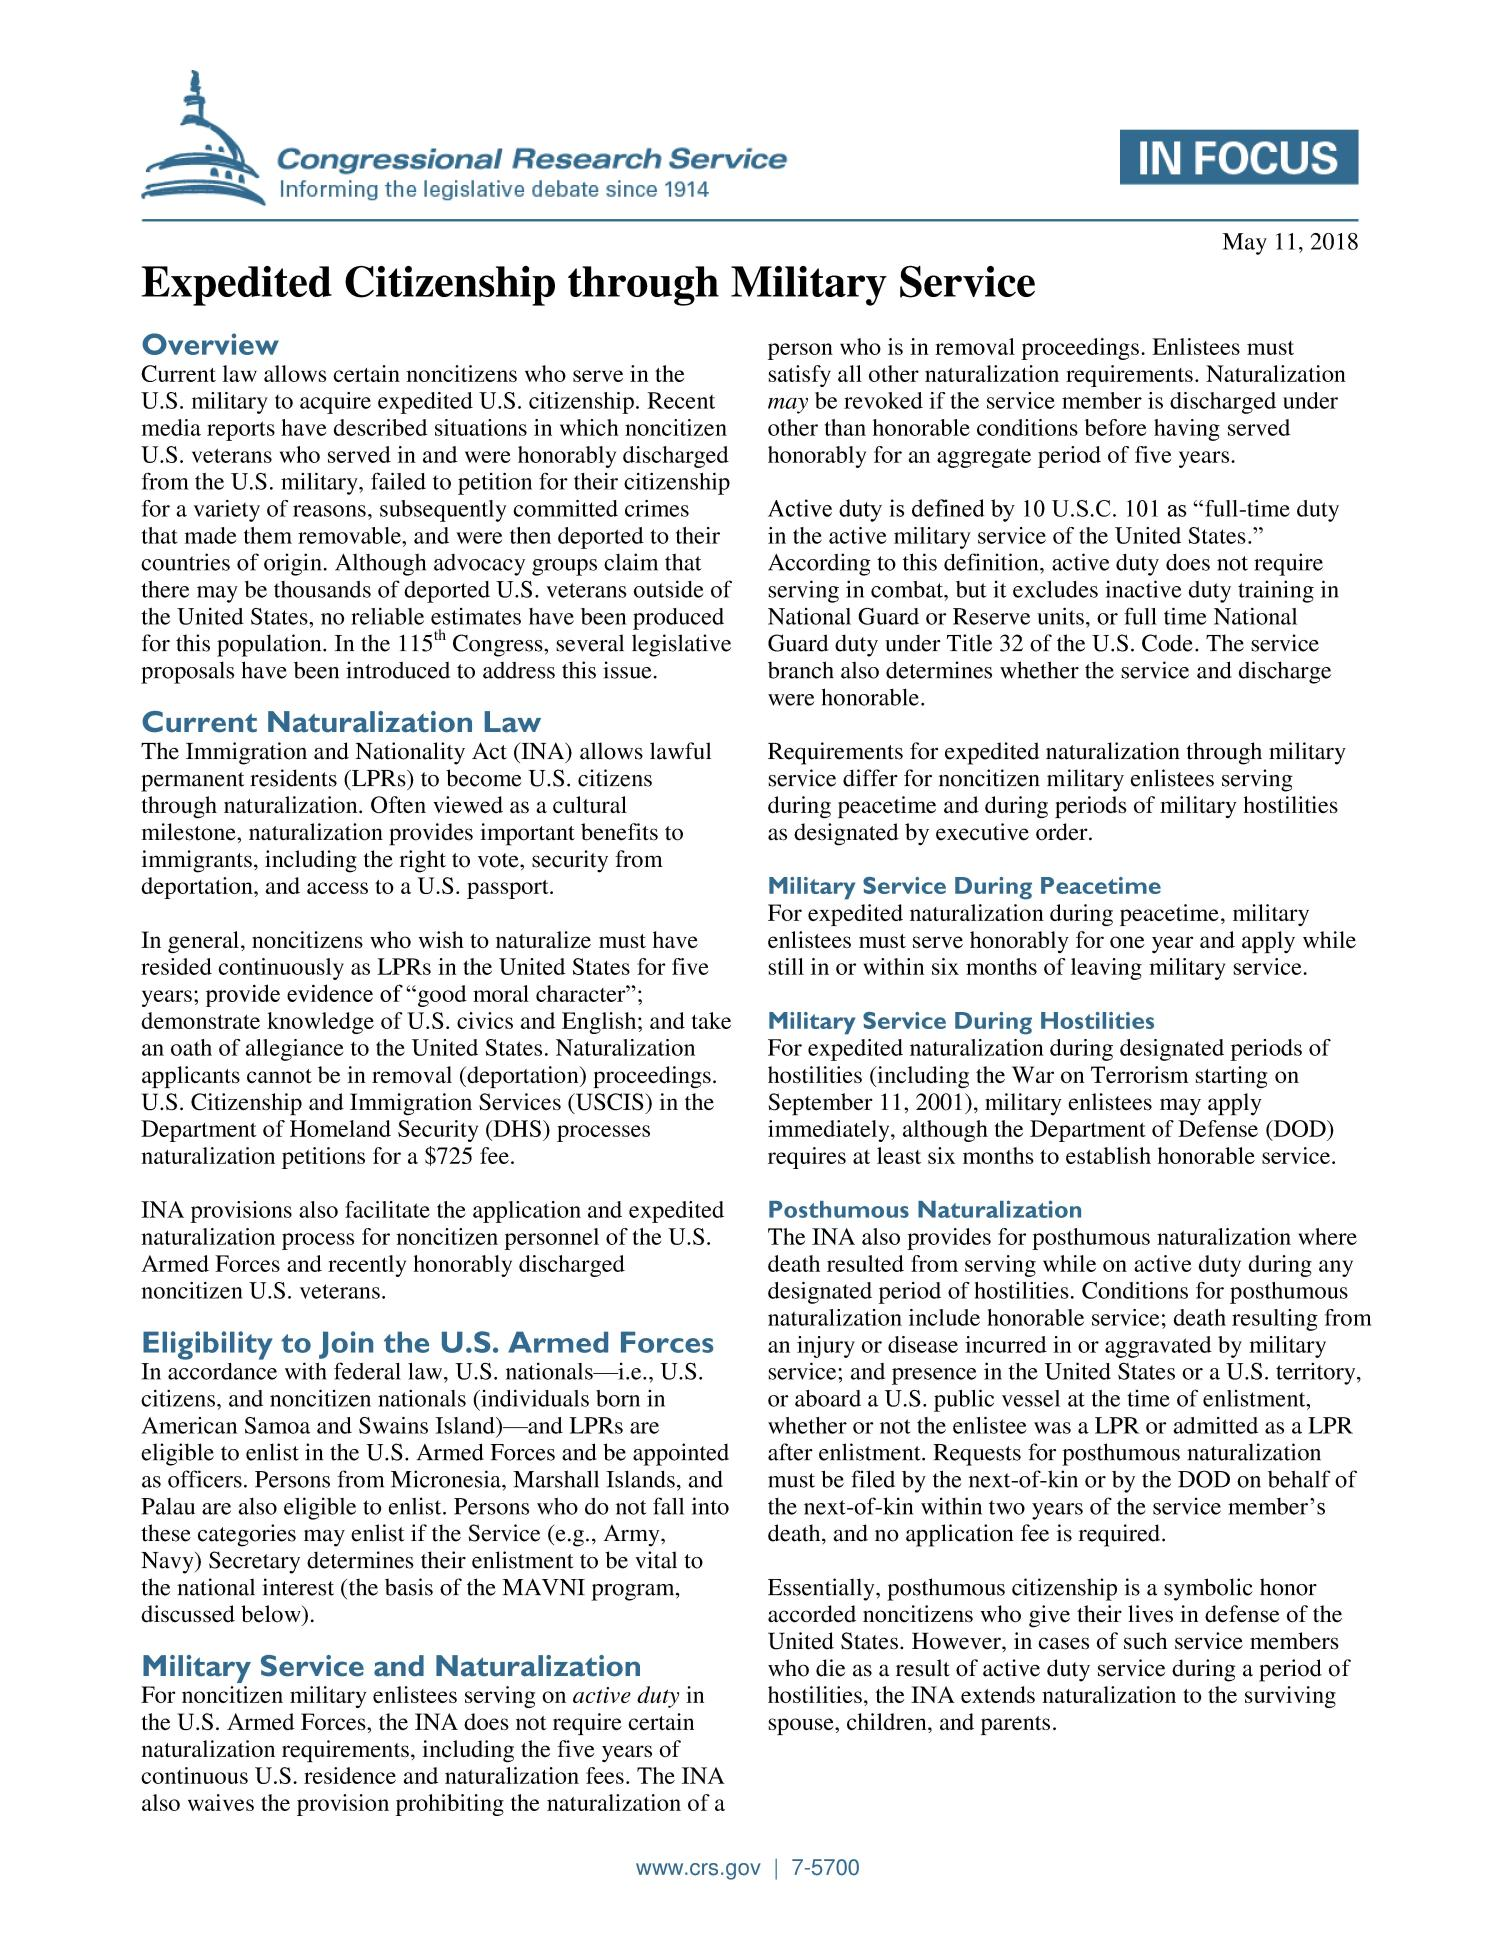 Expedited Citizenship through Military Service - Digital Library